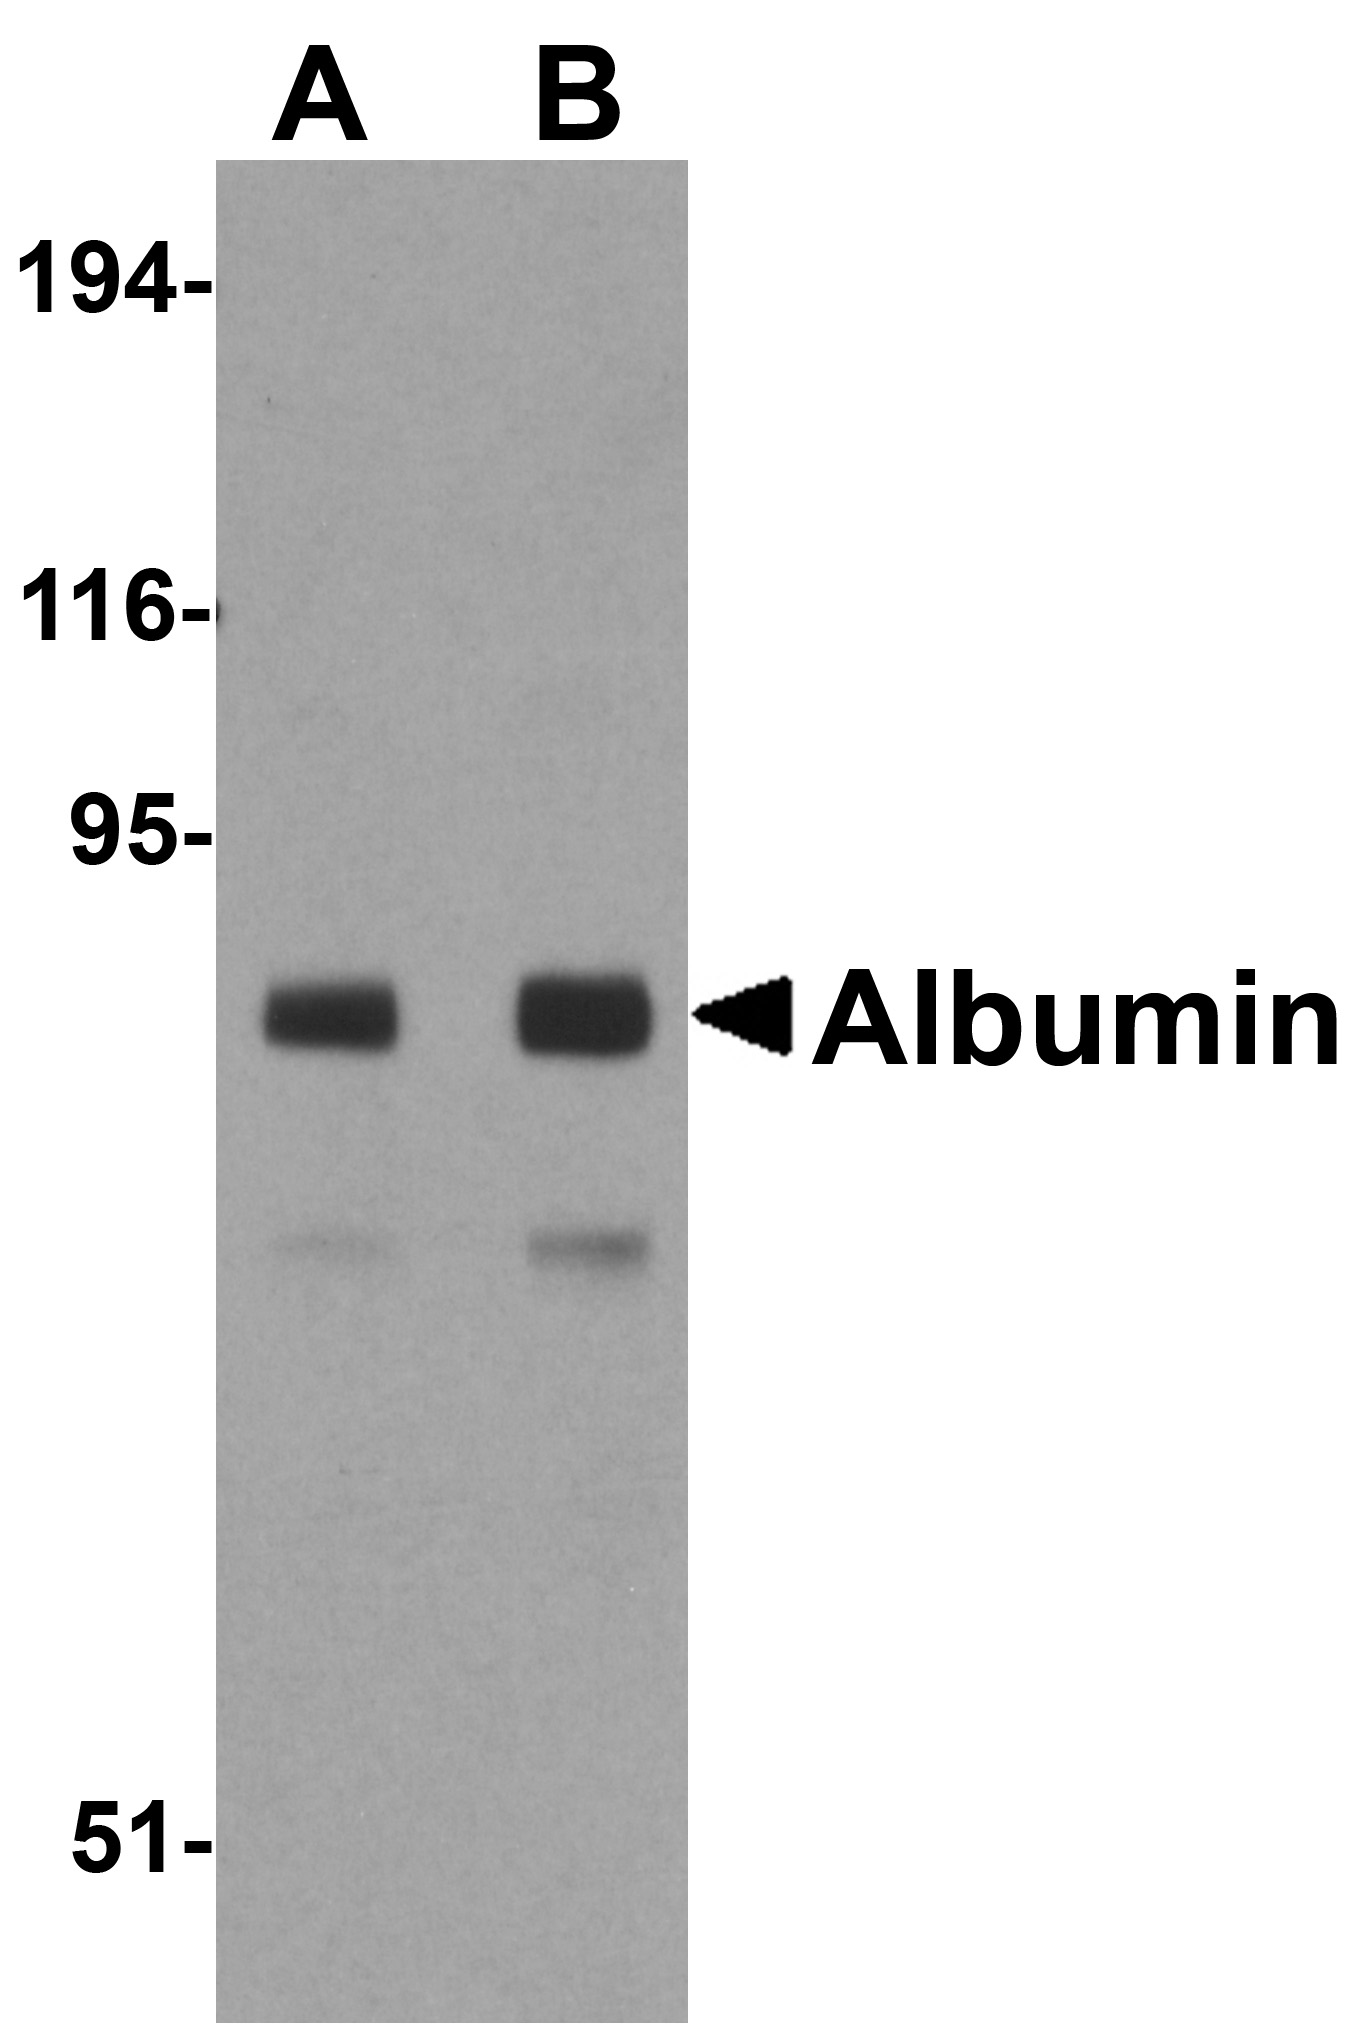 Albumin Antibody (OAPB00884) in Mouse Liver cells using Western Blot